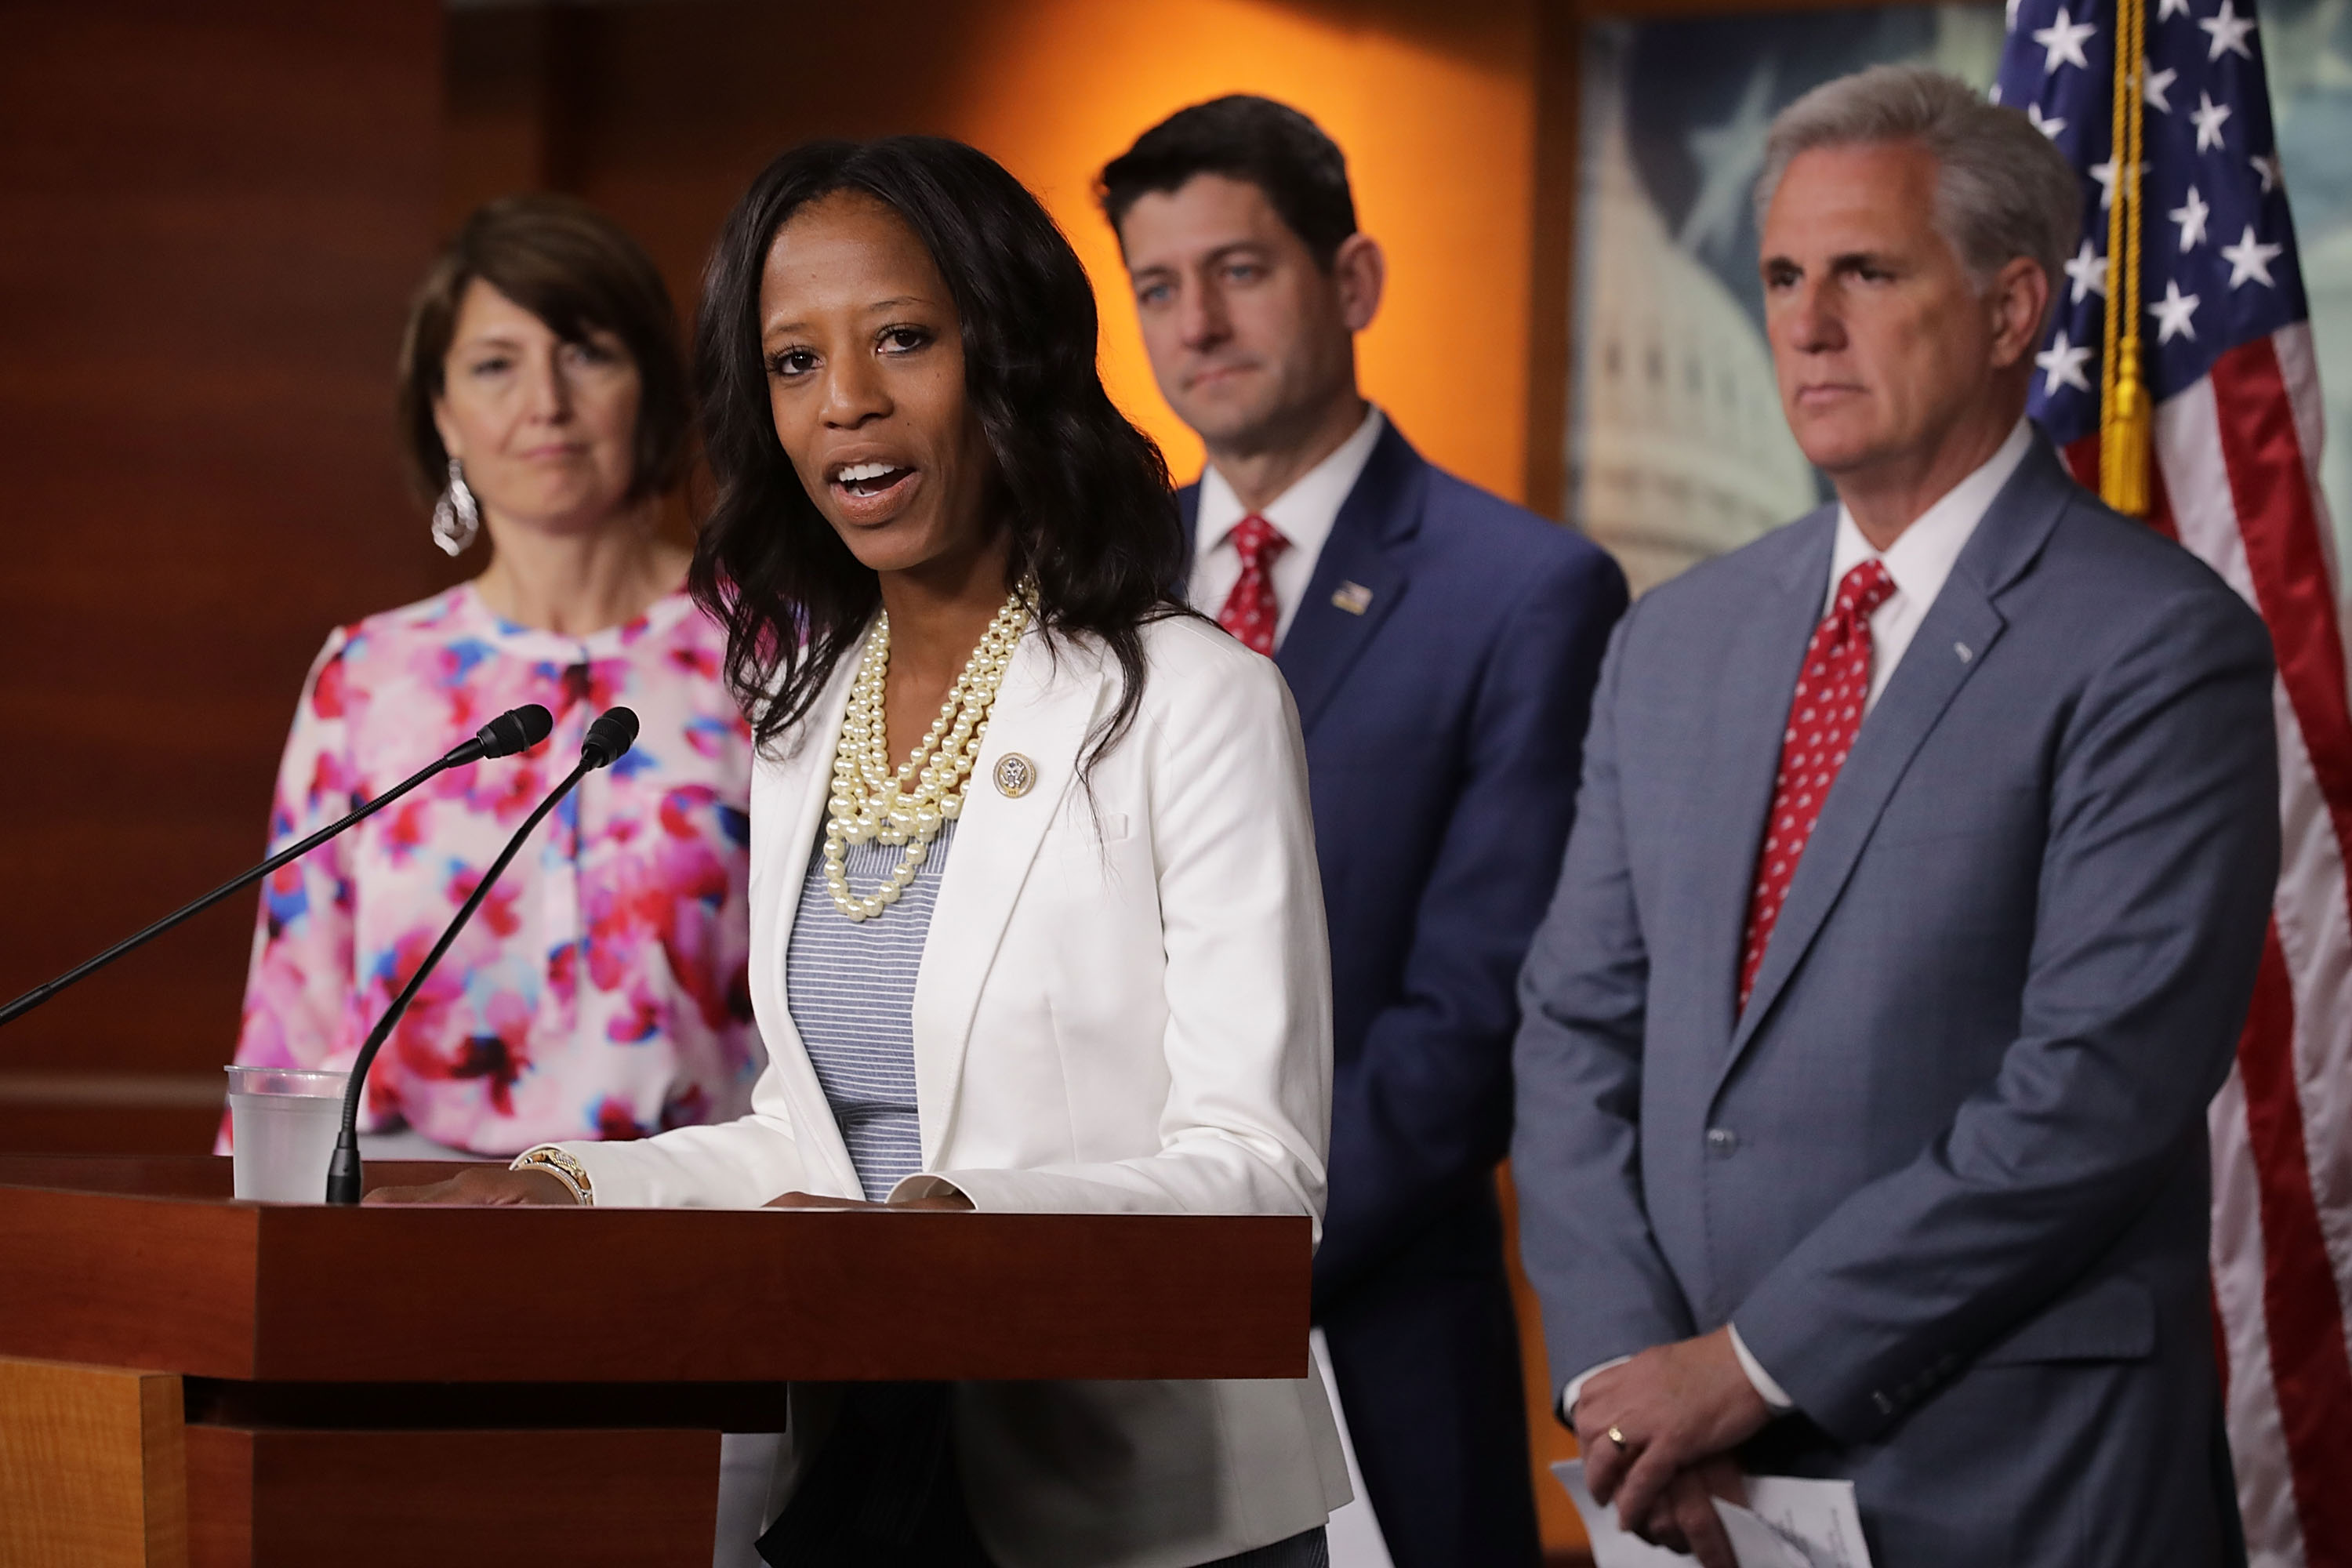 Rep. Mia Love speaks during a news conference with (L-R) Rep. Cathy McMorris Rodgers, Speaker of the House Paul Ryan and Majority Leader Kevin McCarthy following their weekly caucus meeting at the U.S. Capitol Visitors Center July 17, 2018 in Washington, DC. Chip Somodevilla/Getty Images